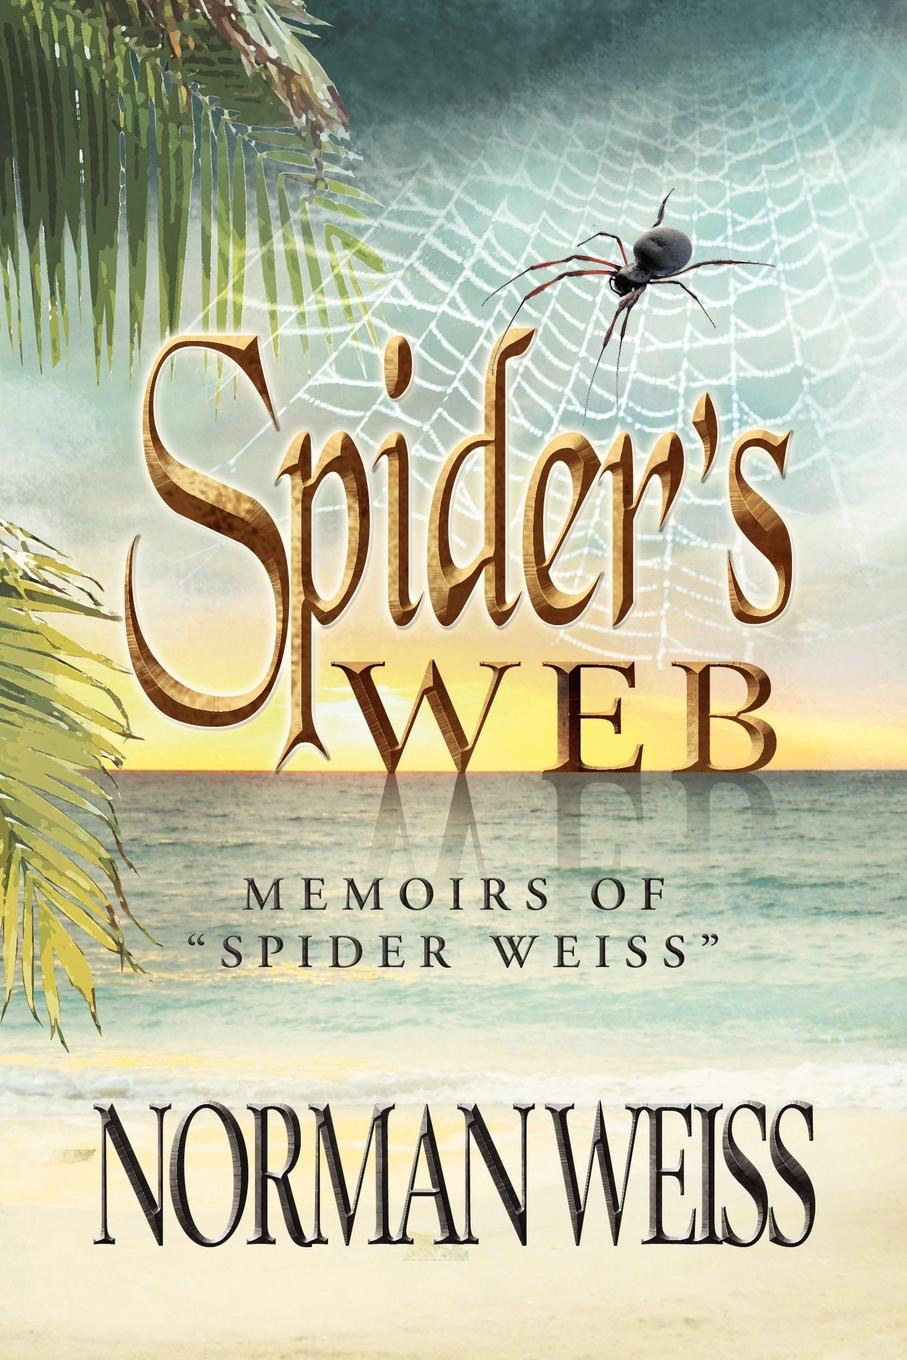 Norman Weiss Spiders Web. Memoirs of Spider